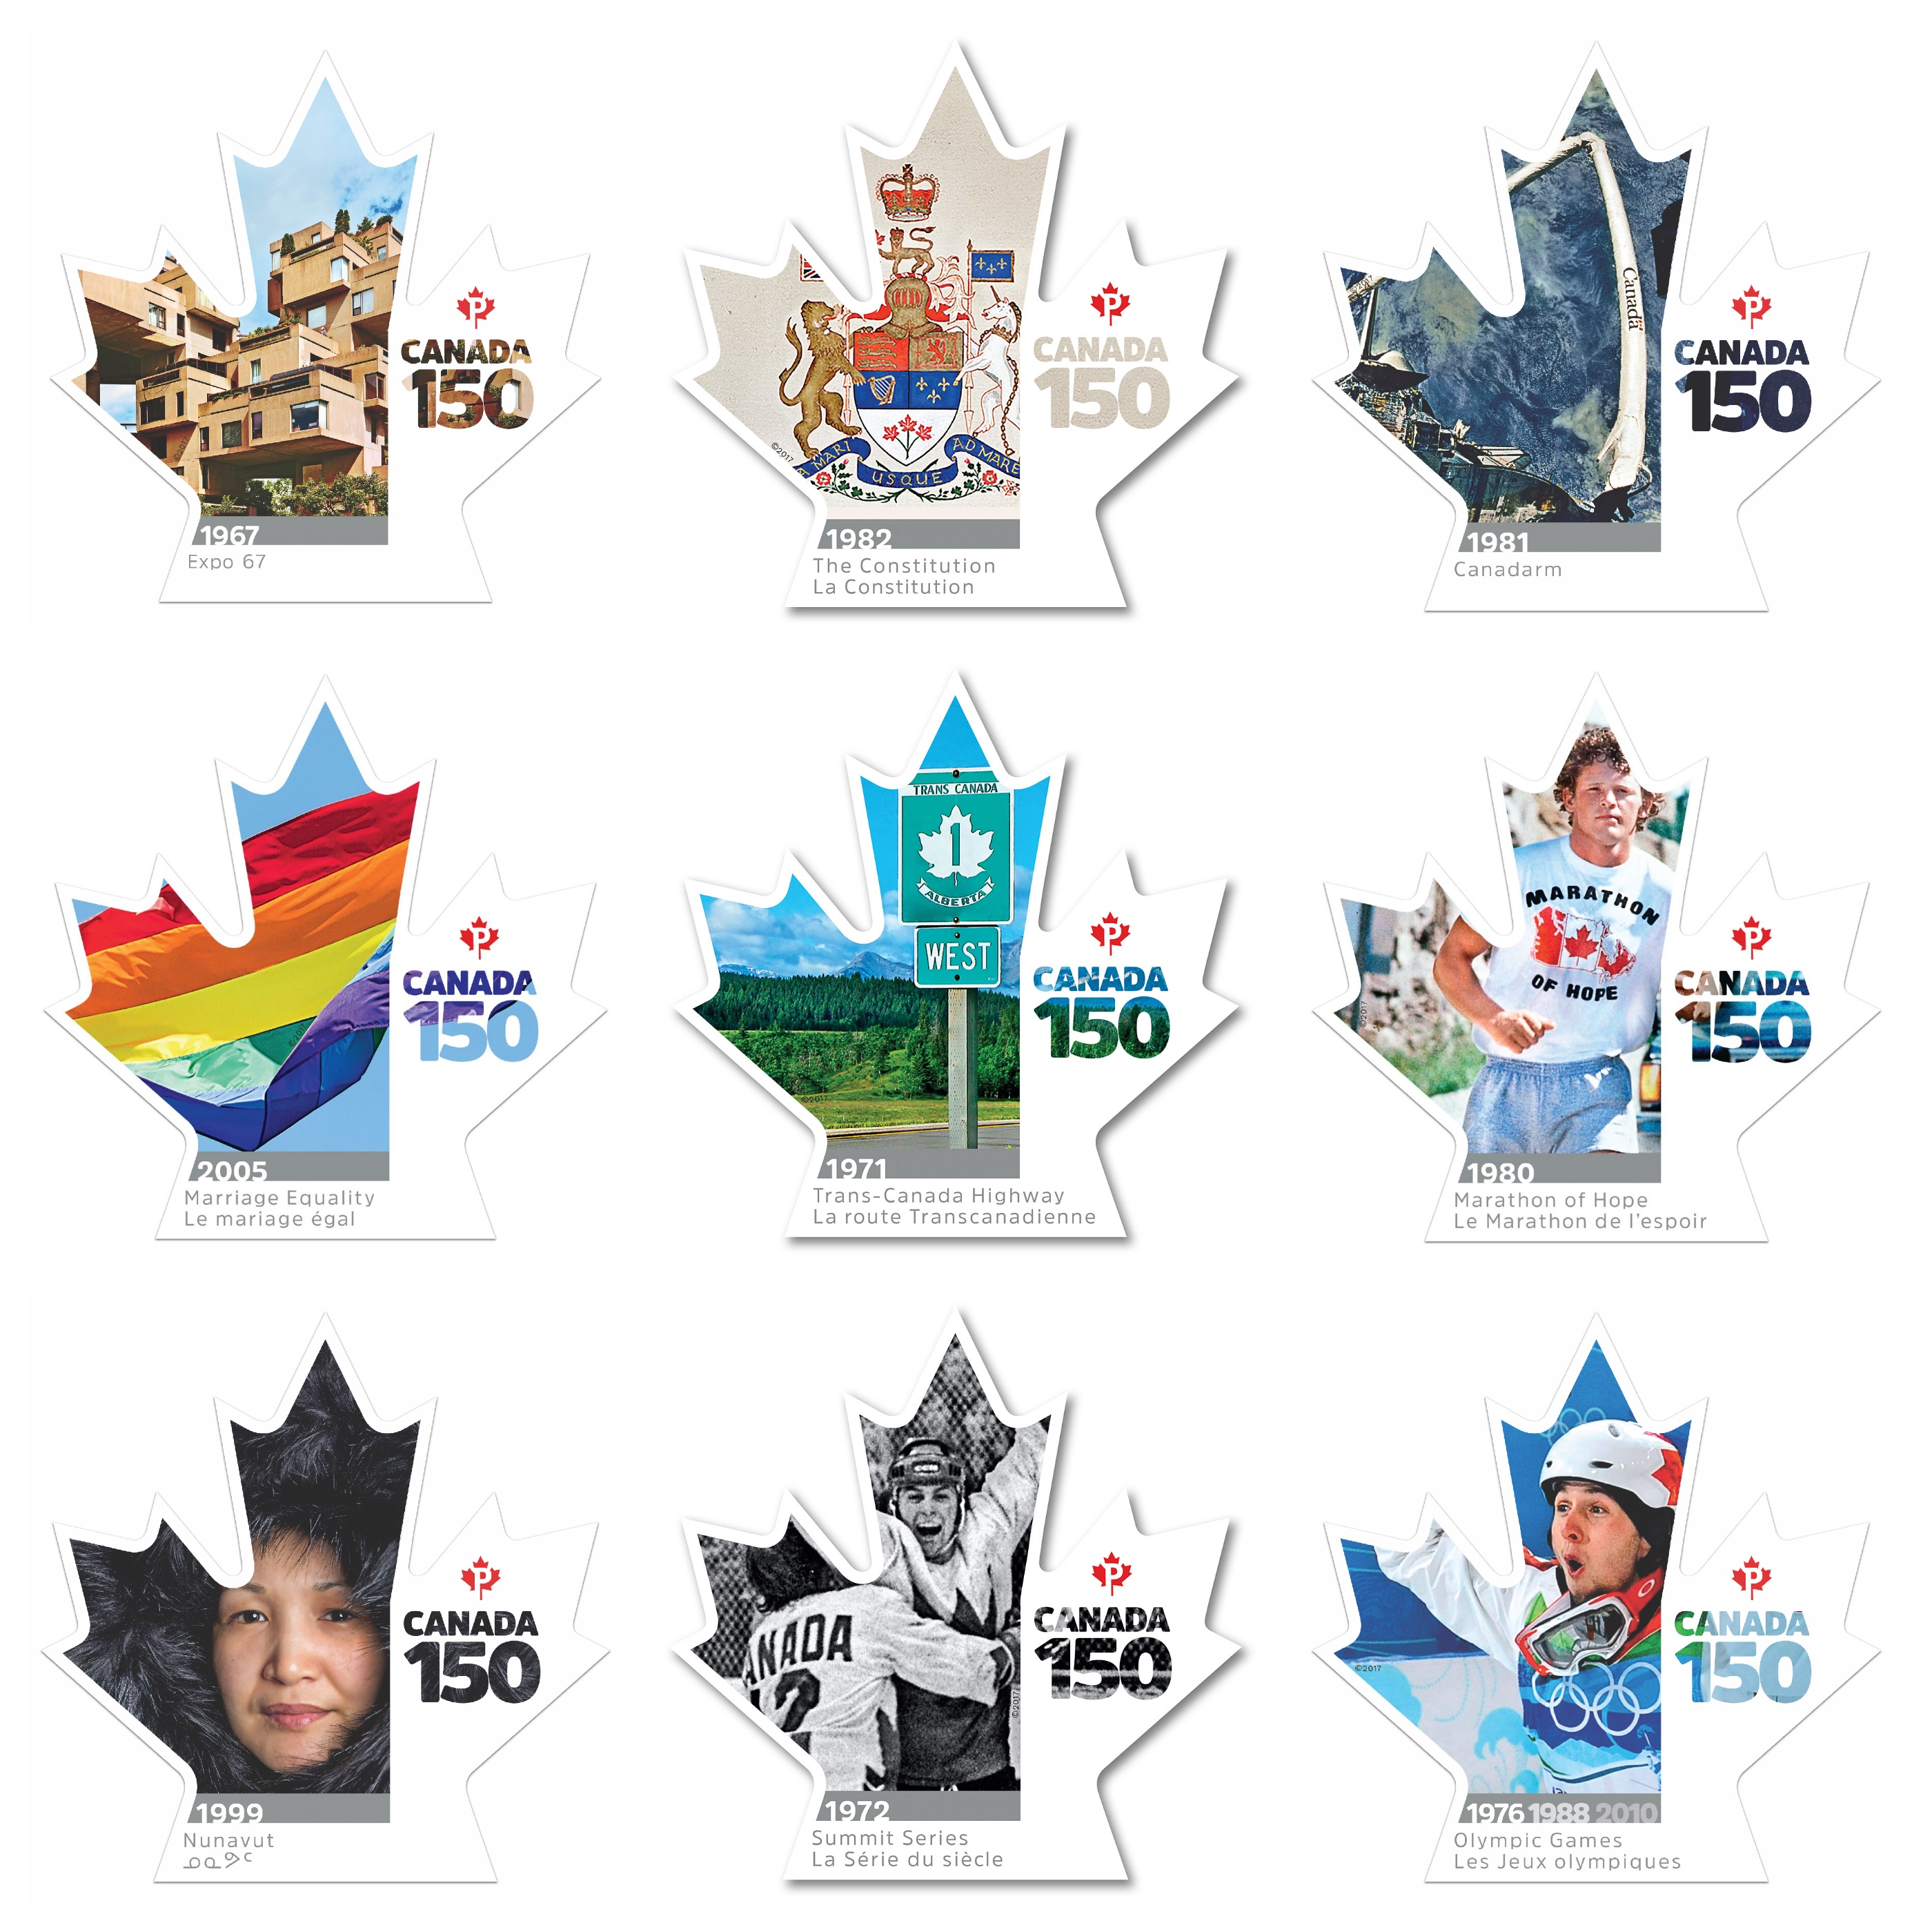 Canada 150 series of stamps